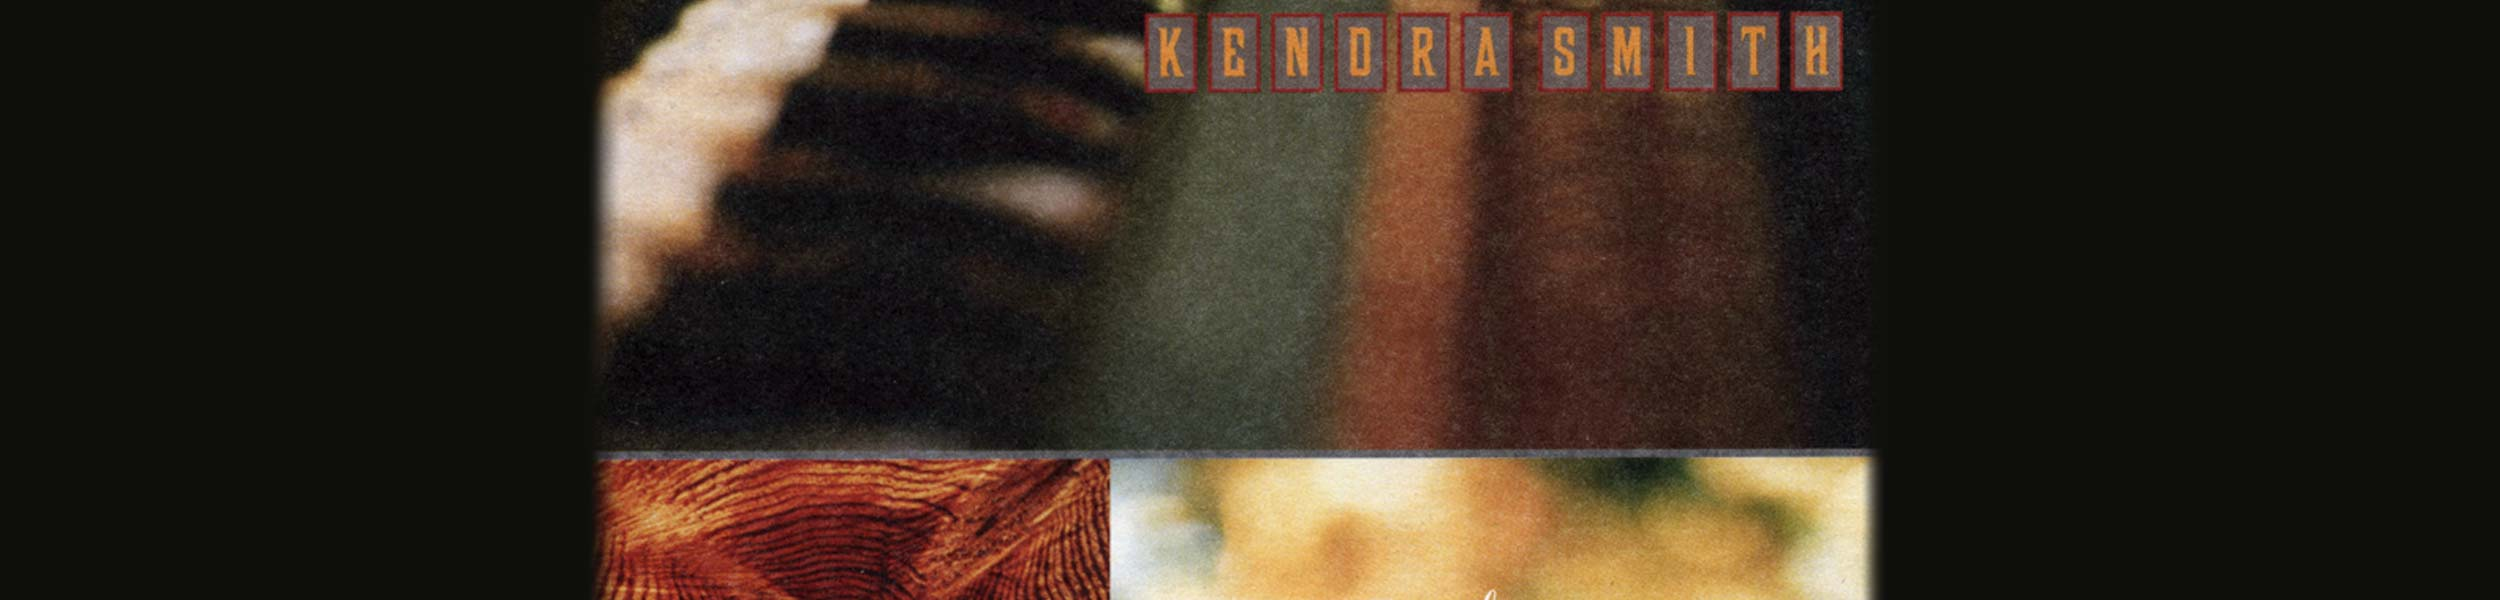 Kendra Smith - title